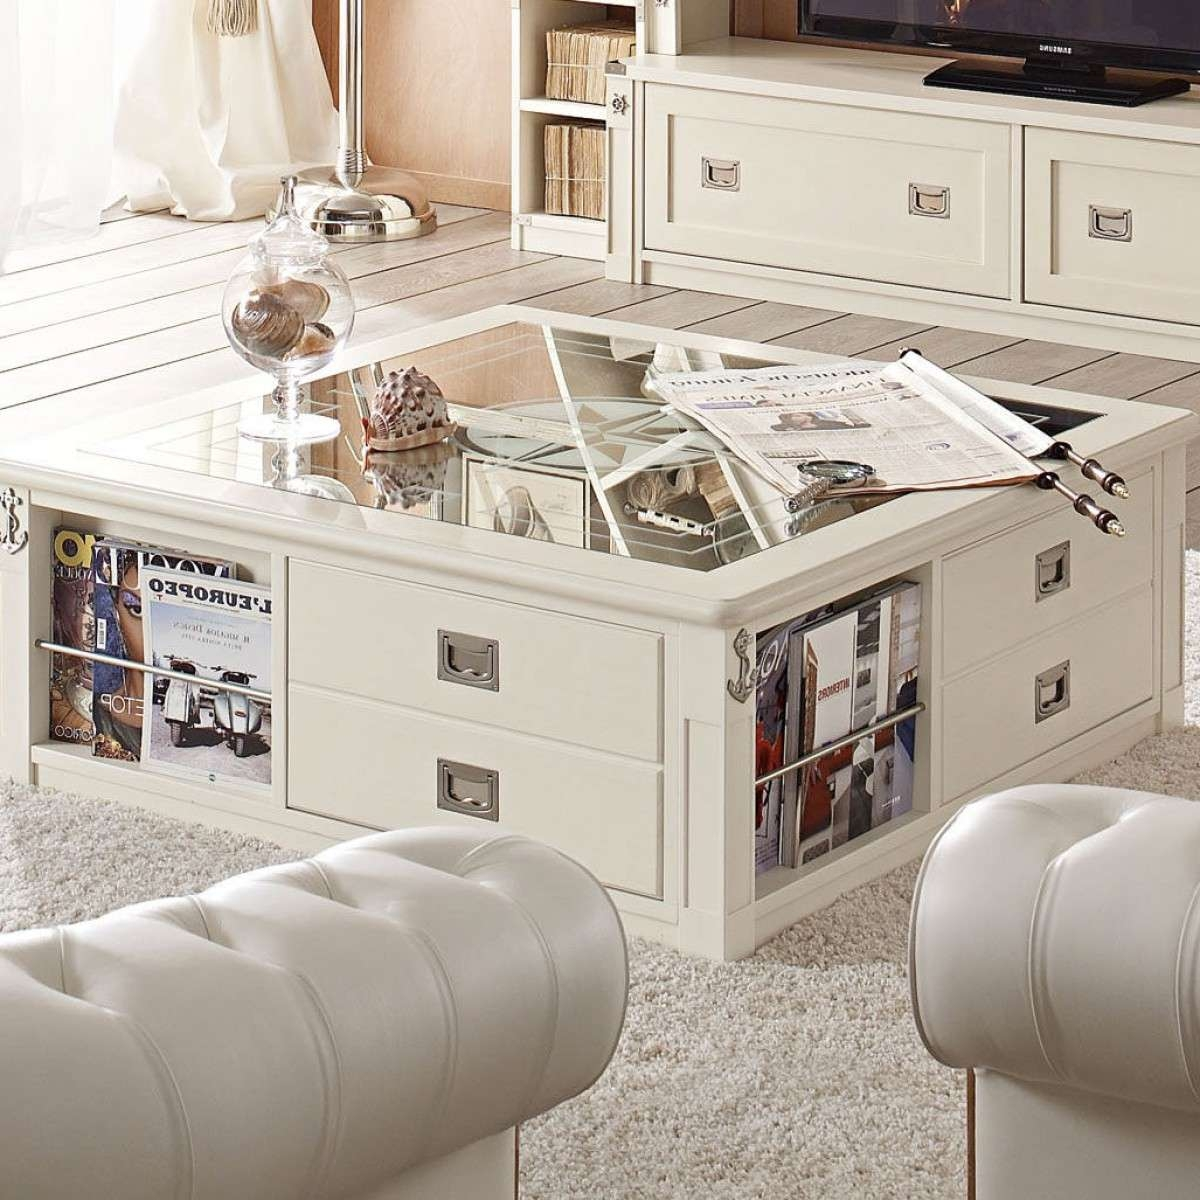 Trendy White Coffee Tables With Storage With White Coffee Table With Storage (View 17 of 20)